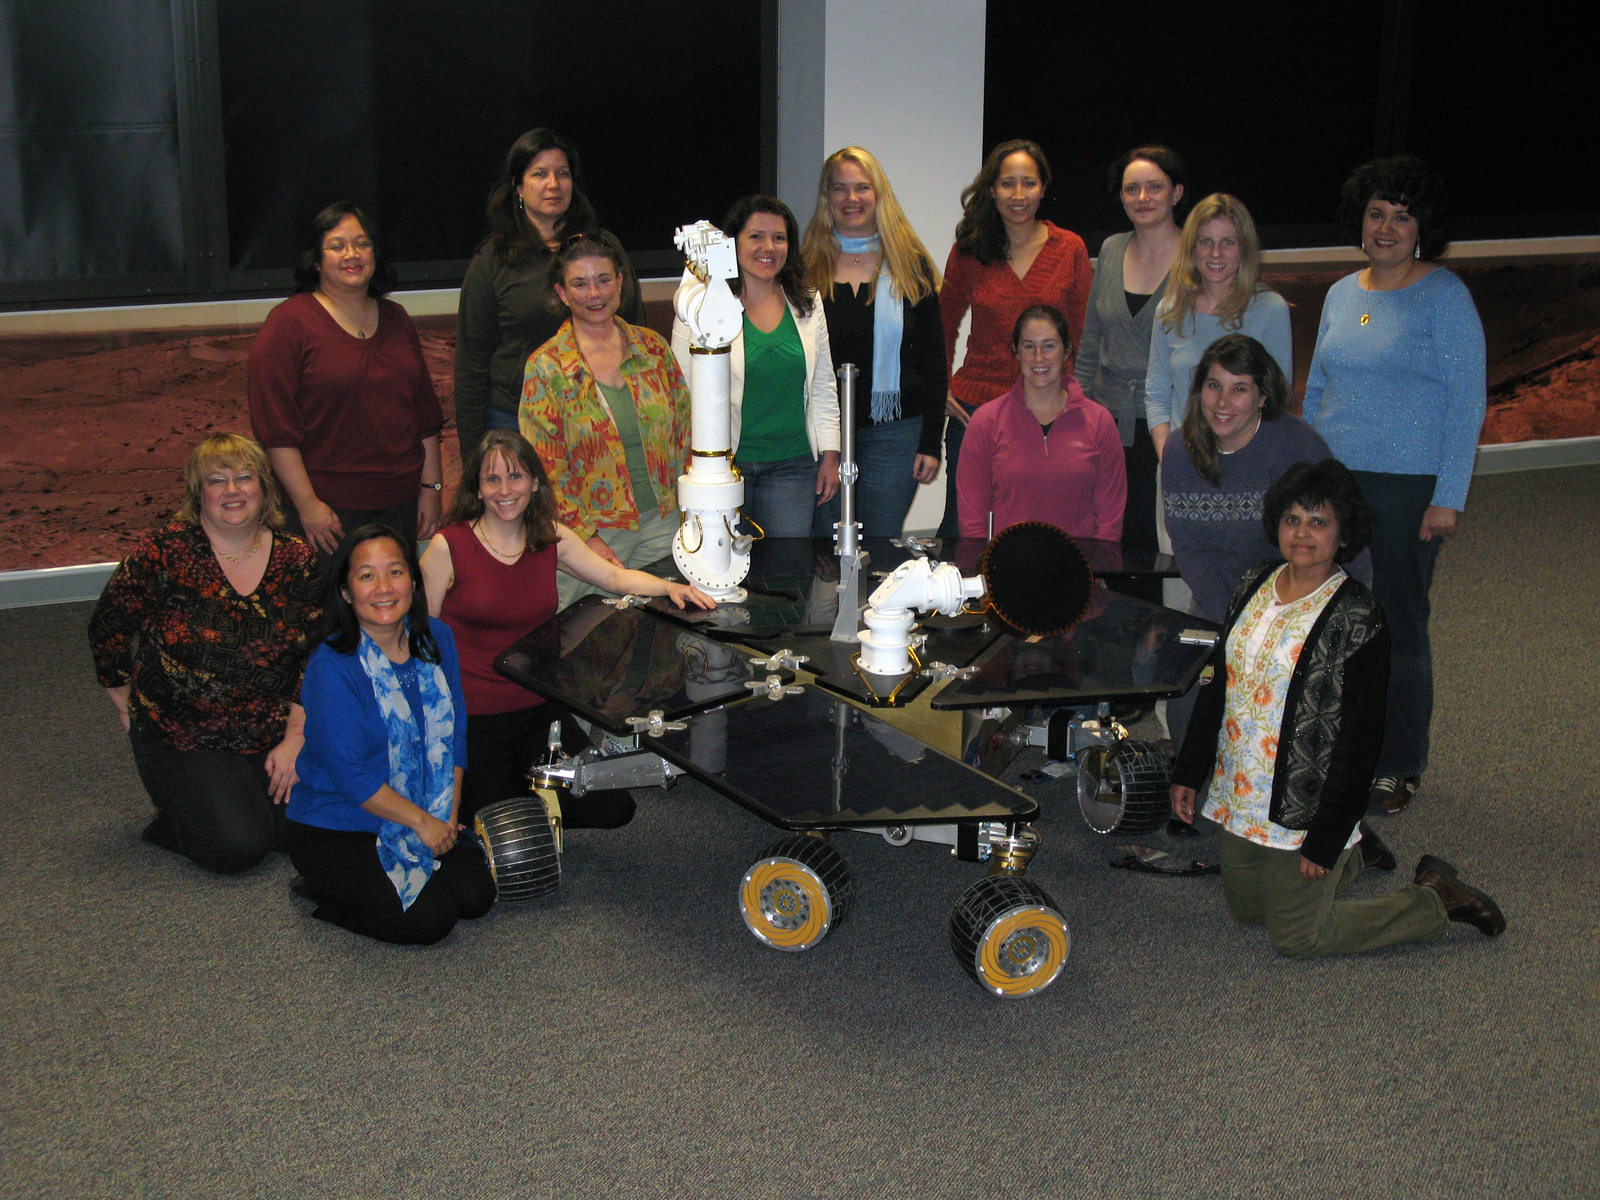 This photo shows fifteen of the women engineers and scientists who work on the Mars Exploration Rover. They are standing behind or kneeling beside a precise replica of the rover in the mission control room.